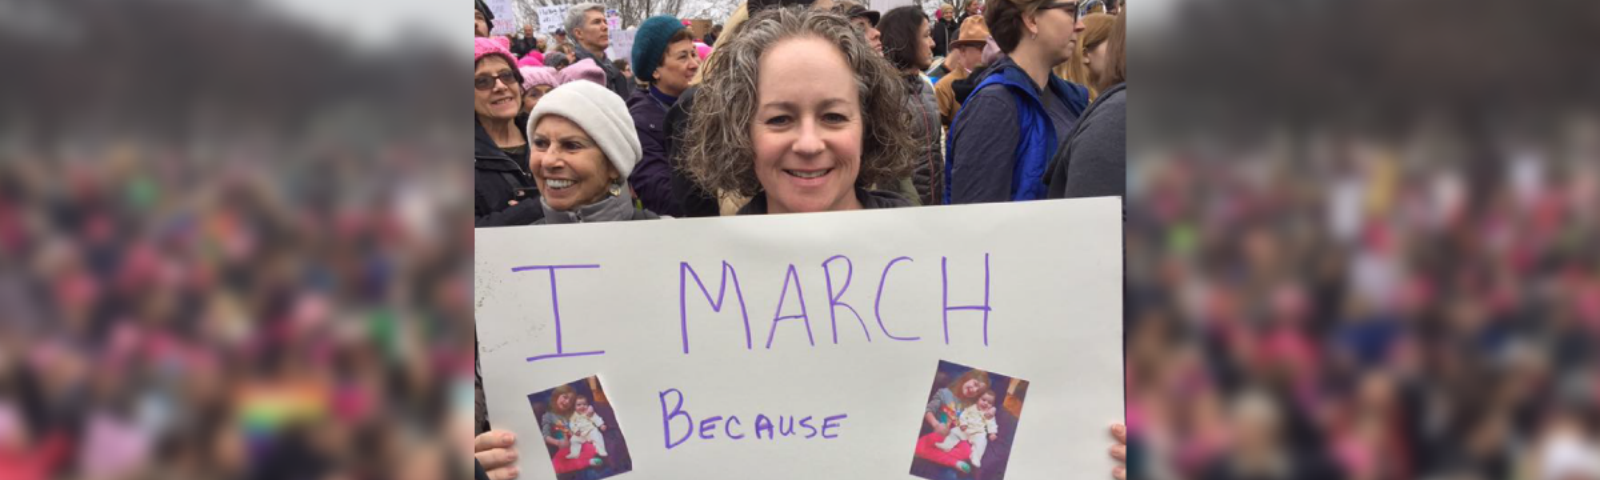 Why I March, and What To Do Next